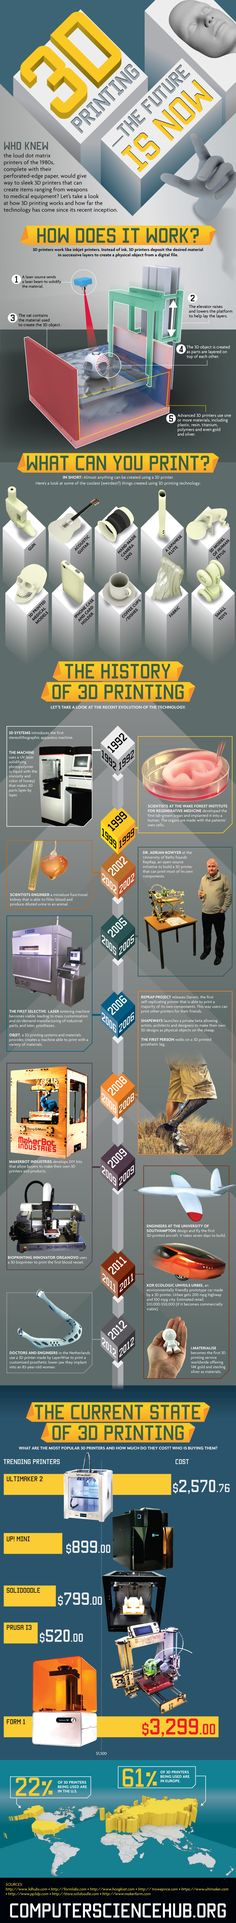 Another Awesome 3D Print Infographic #3dprinting #infographic